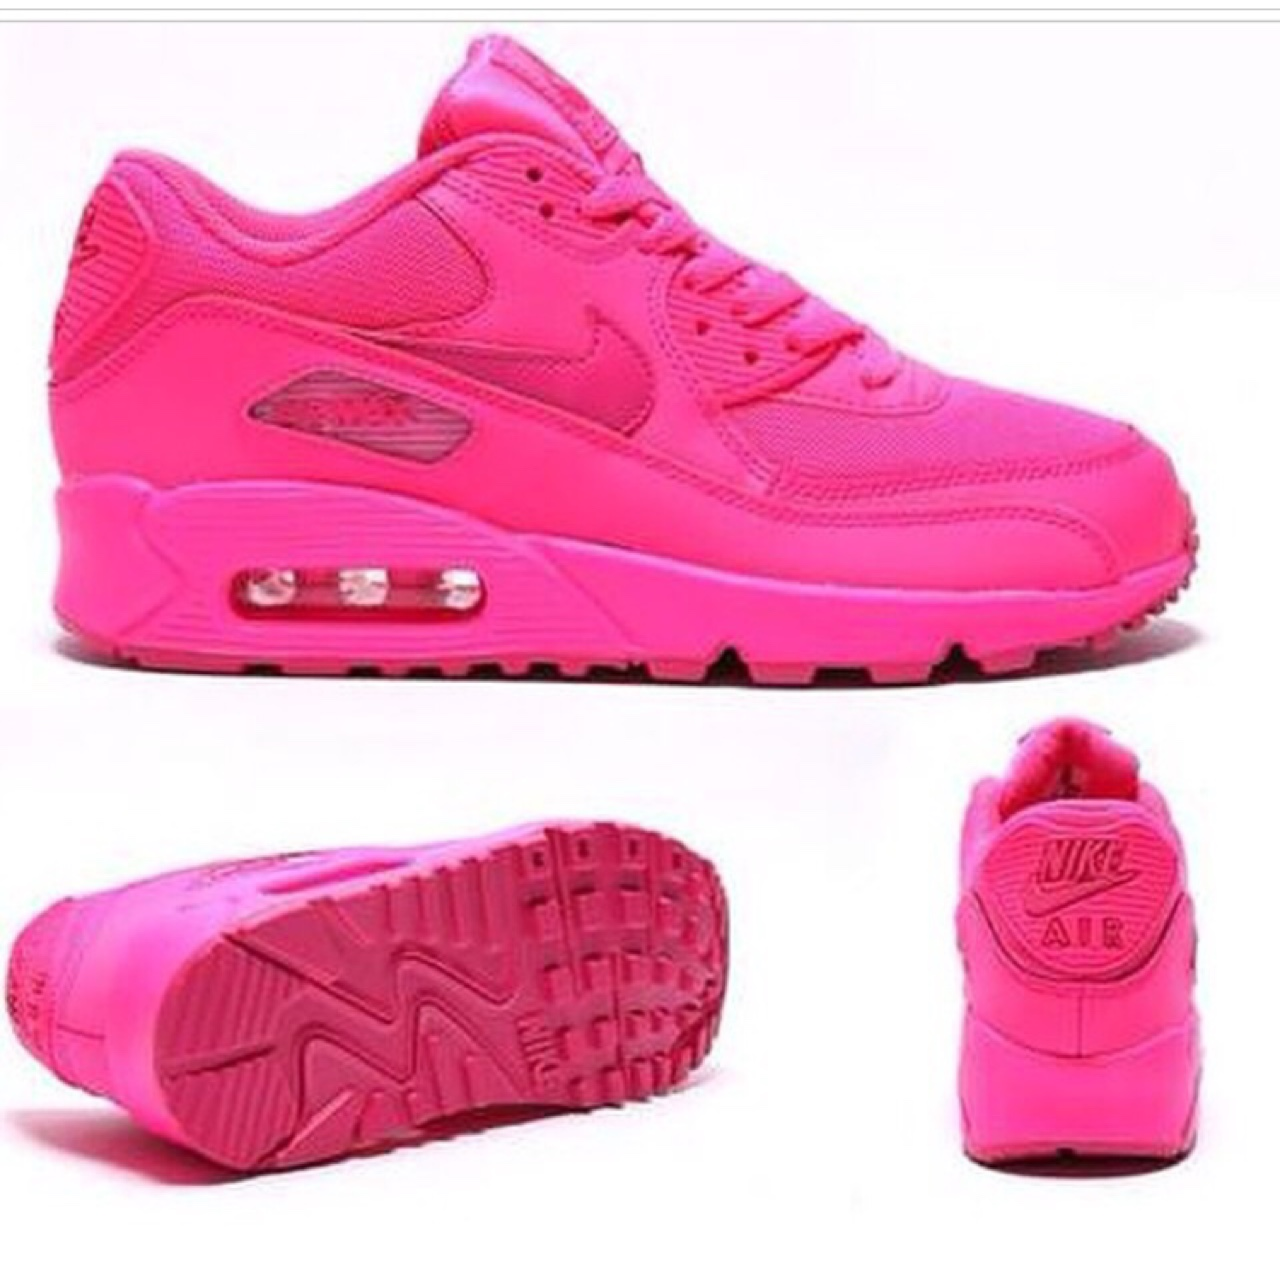 air max rosa fluo nike shox femmes rabais. Black Bedroom Furniture Sets. Home Design Ideas